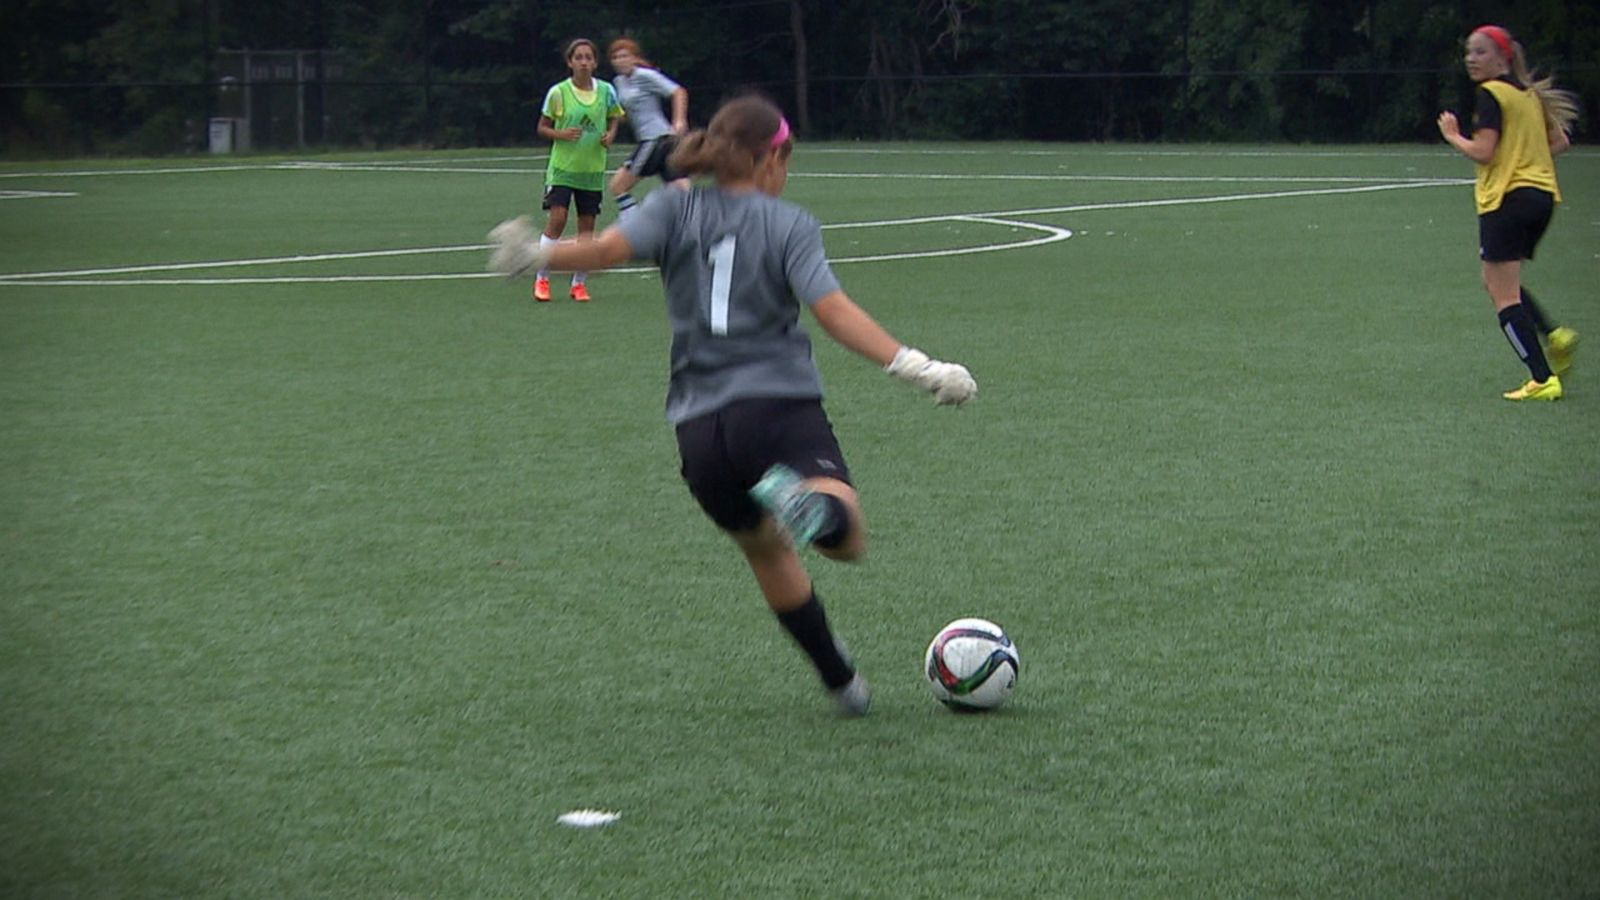 Watch Could Soccer Headers Cause Brain Injury video